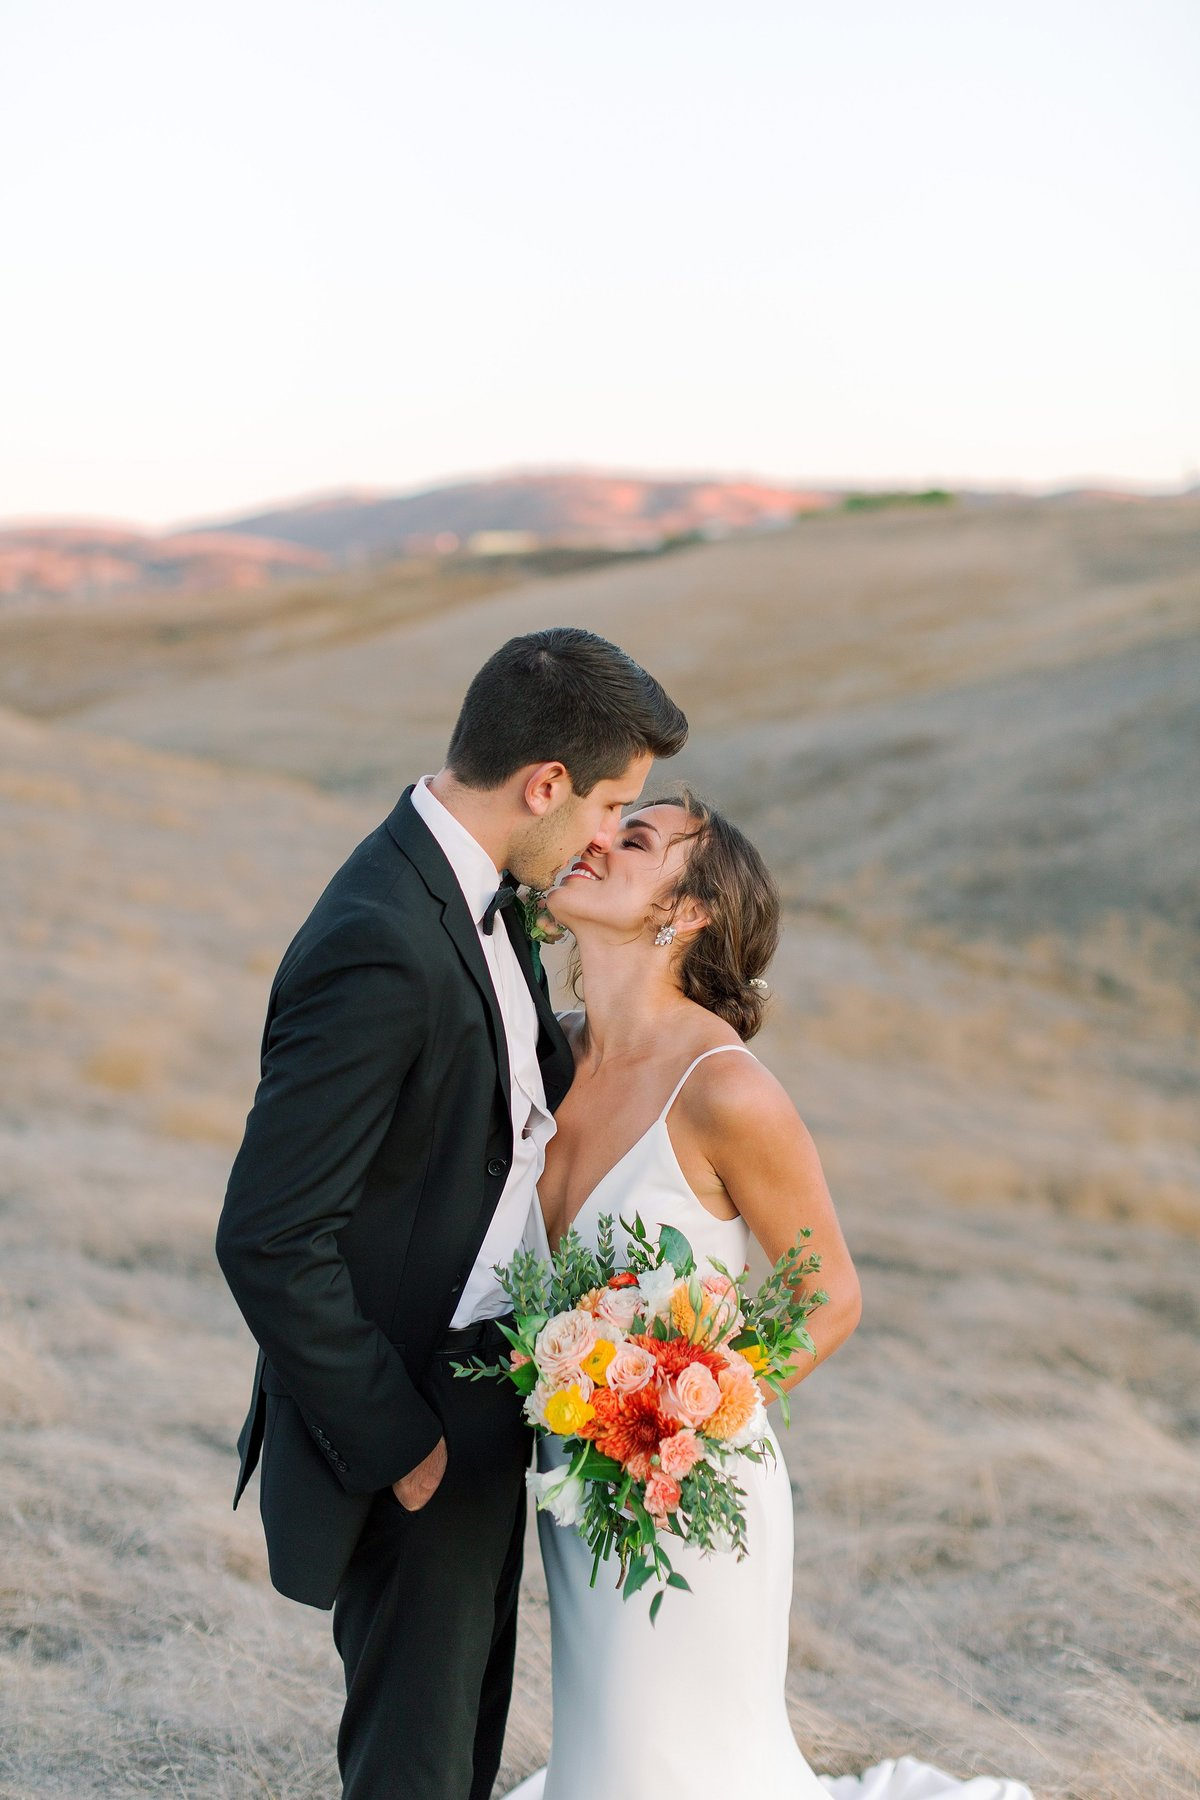 20191020 Modern Elegance Wedding Styled Shoot at Three Steves Winery Livermore_Bethany Picone Photography-211_WEB